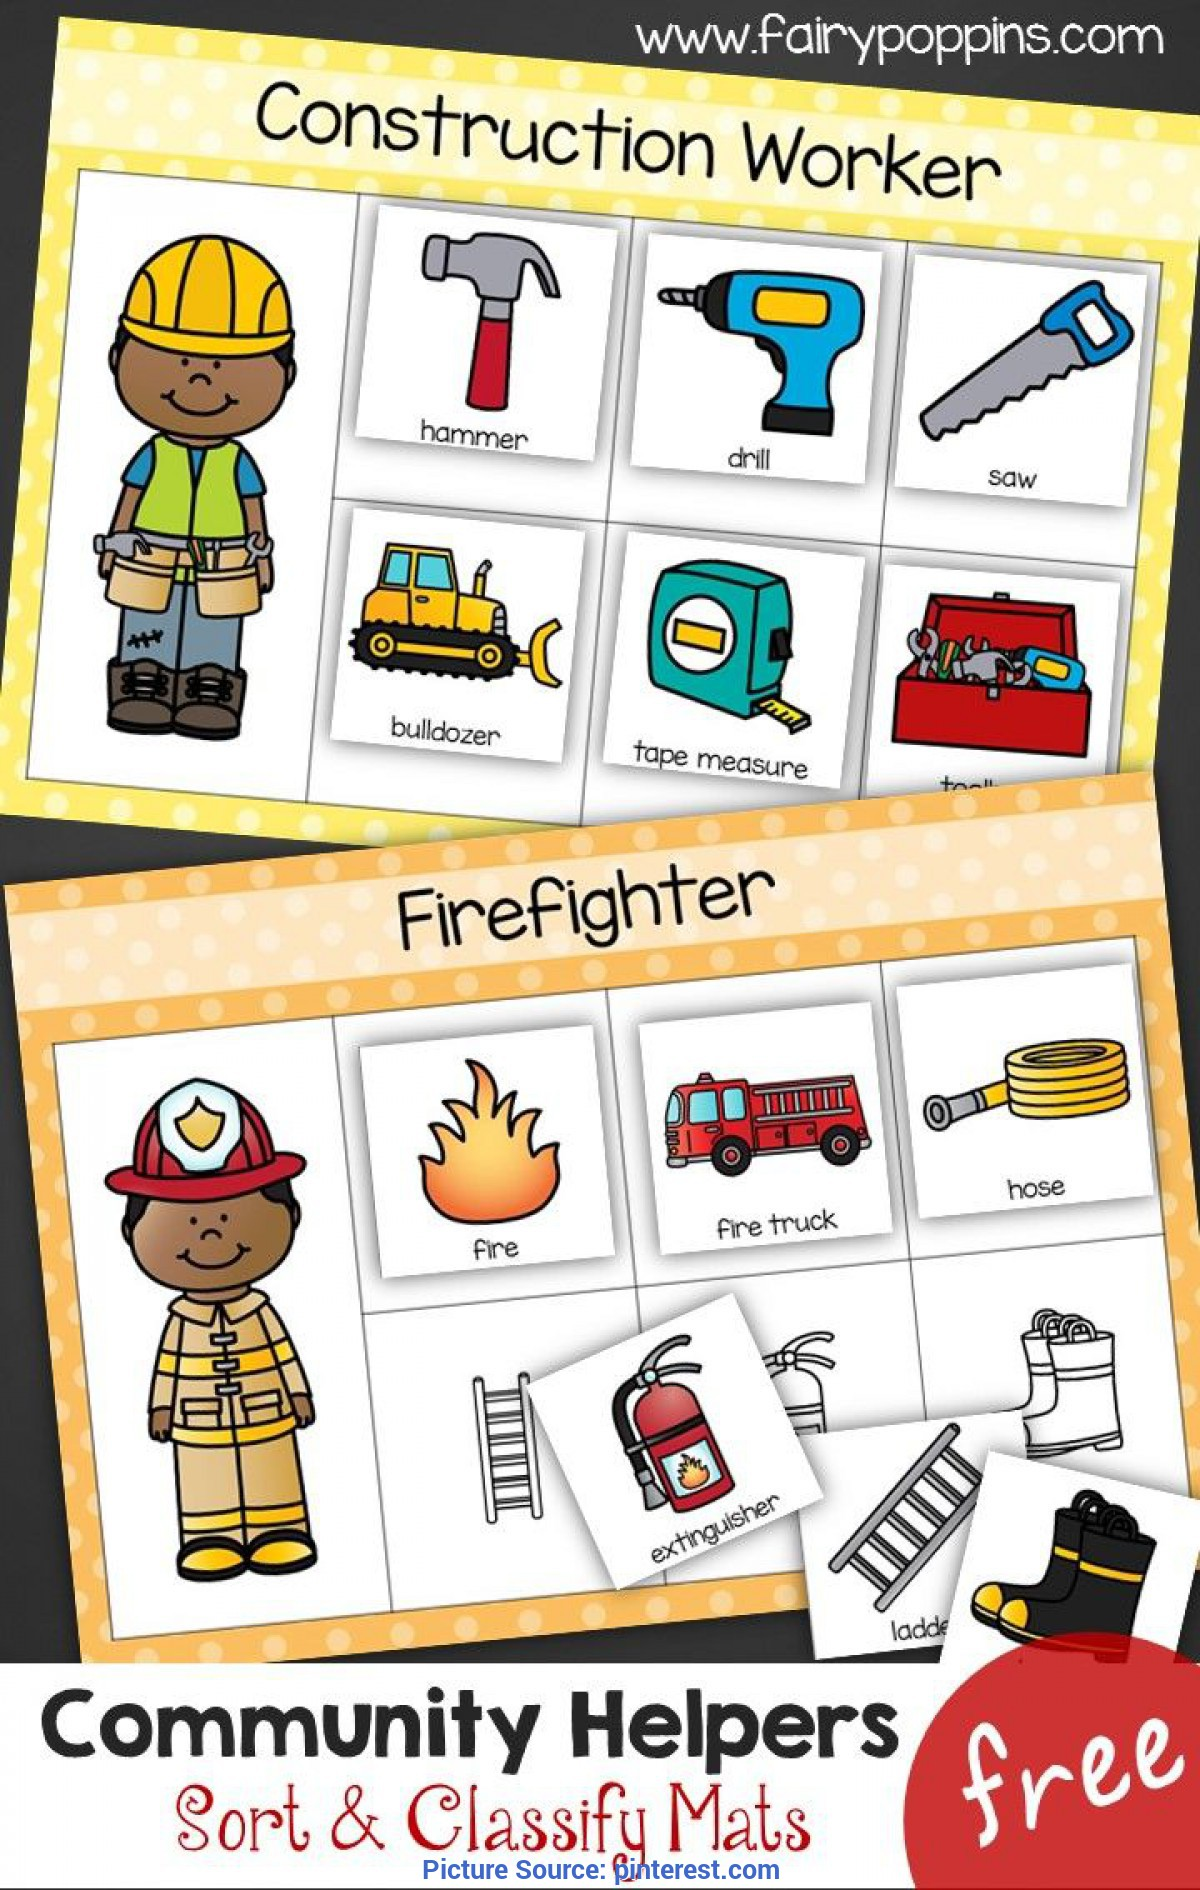 Regular Community Helpers Lesson Plans For 2 Year Olds Best 25